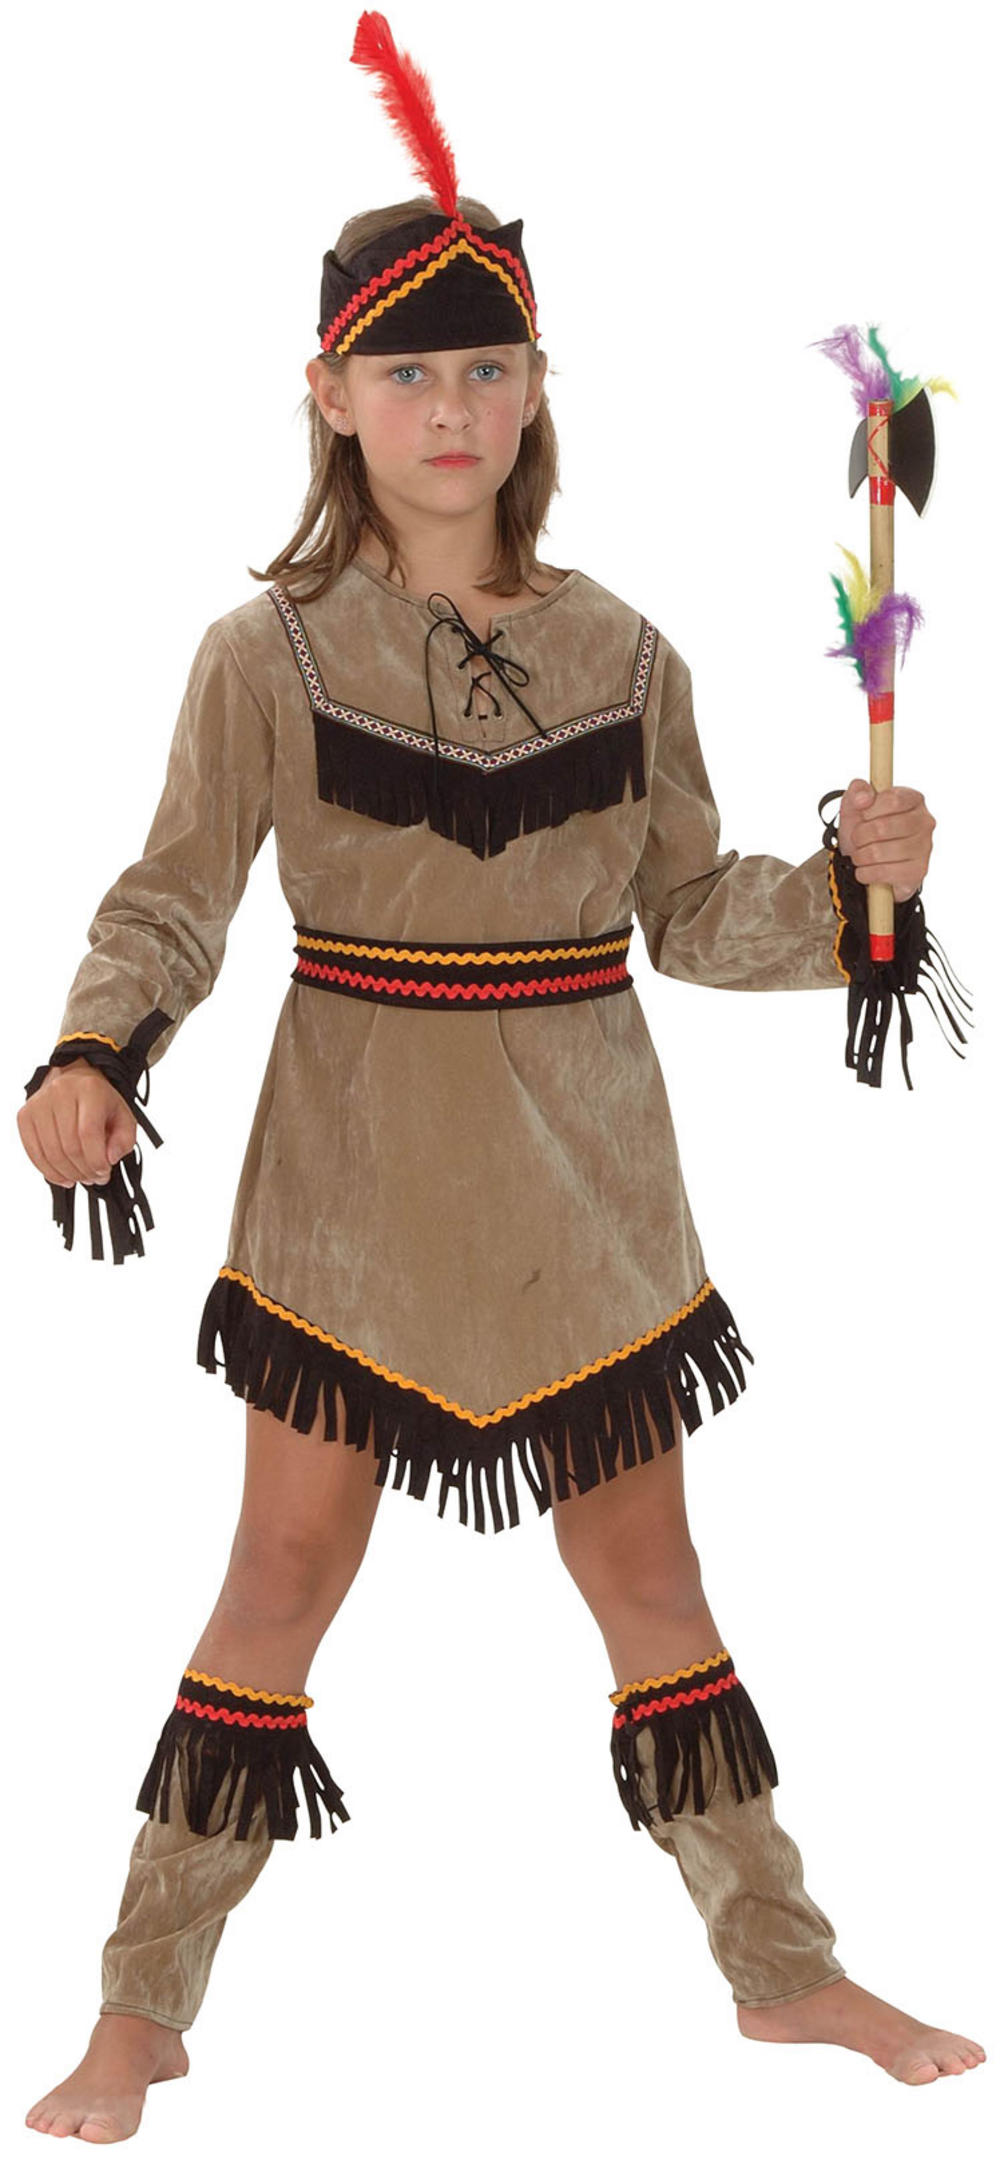 Kids Indian Girl Deluxe Costume  sc 1 st  Mega Fancy Dress & Kids Indian Girl Deluxe Costume | Letter